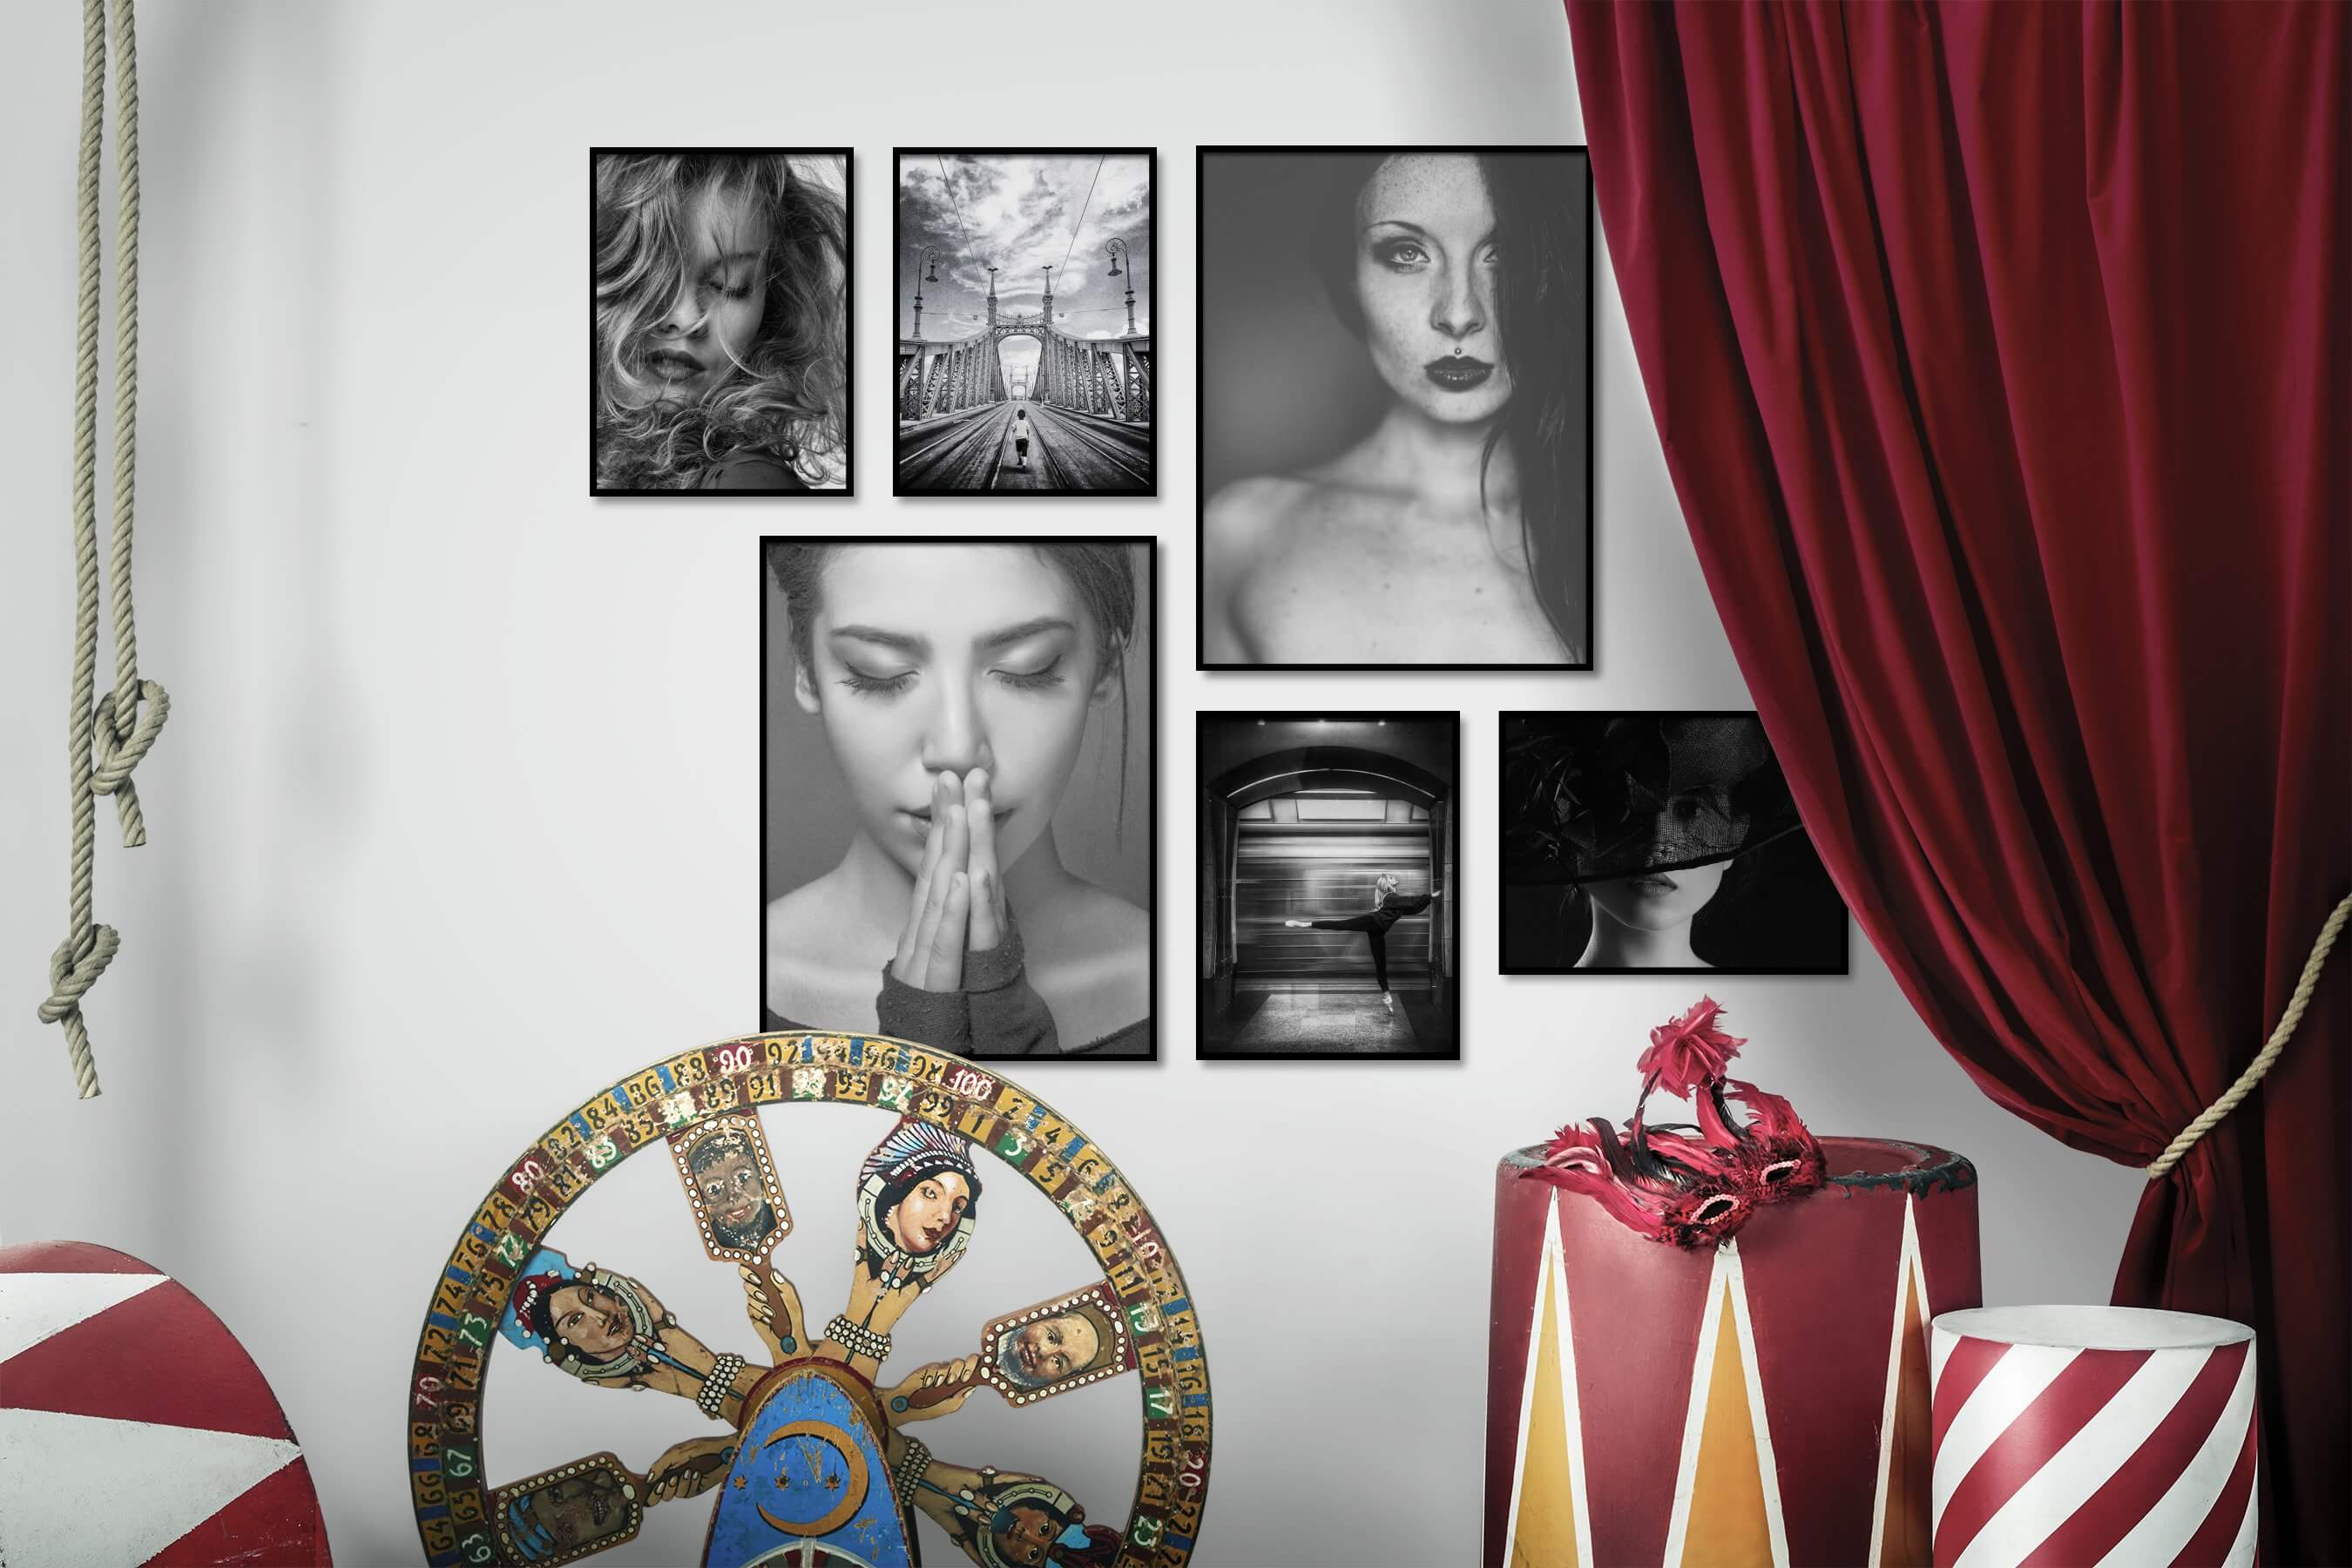 Gallery wall idea with six framed pictures arranged on a wall depicting Fashion & Beauty, Black & White, City Life, Mindfulness, and Dark Tones